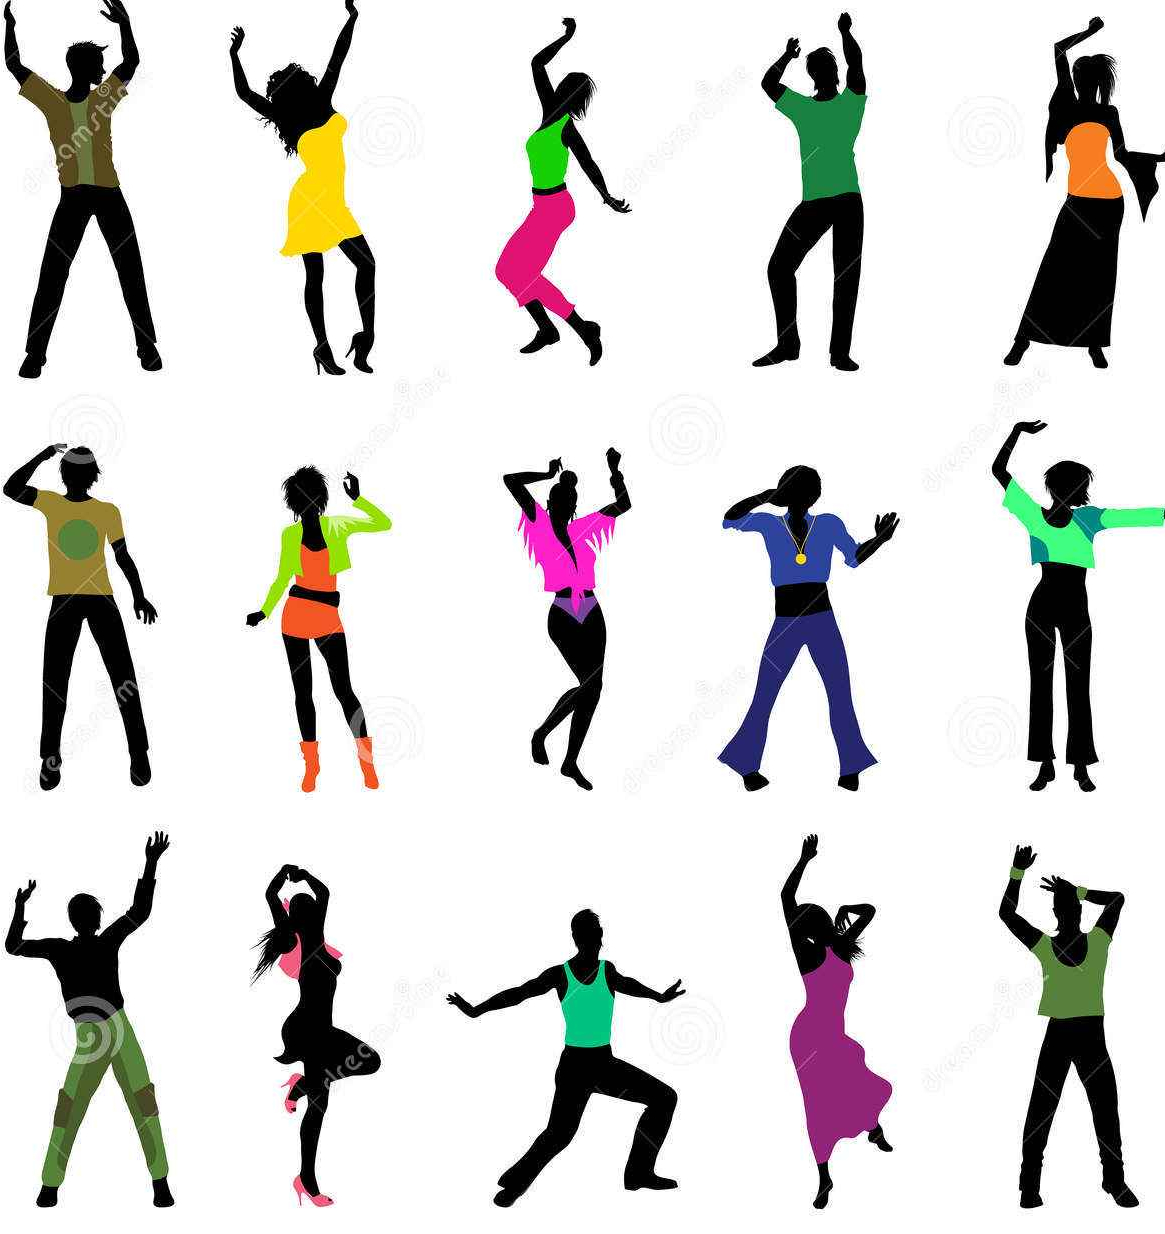 dancing-people-silhouettes-20419883